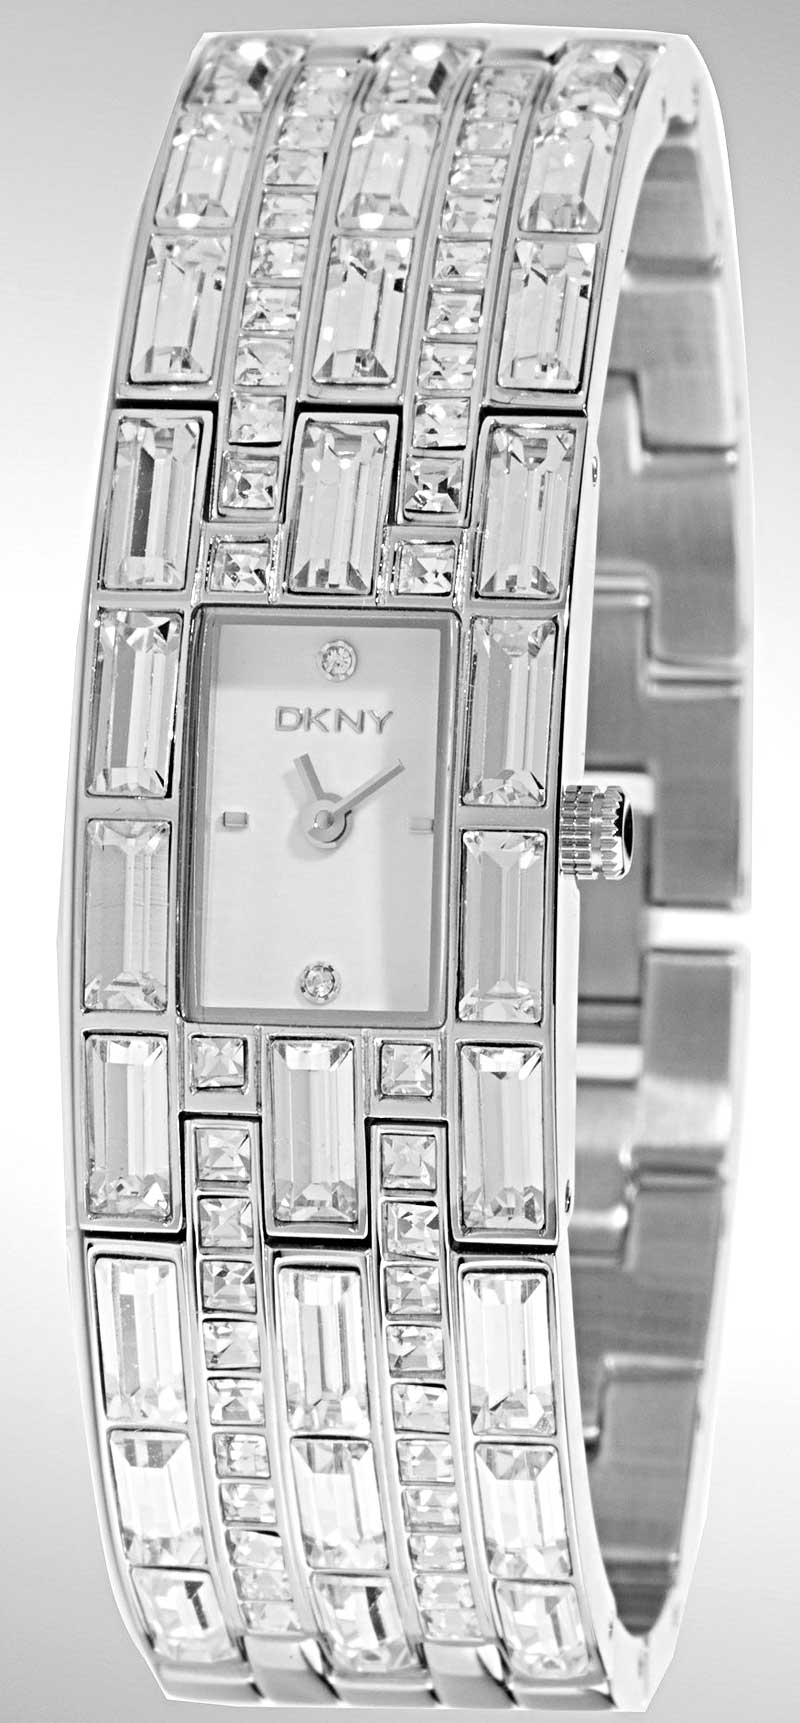 dkny watches for women